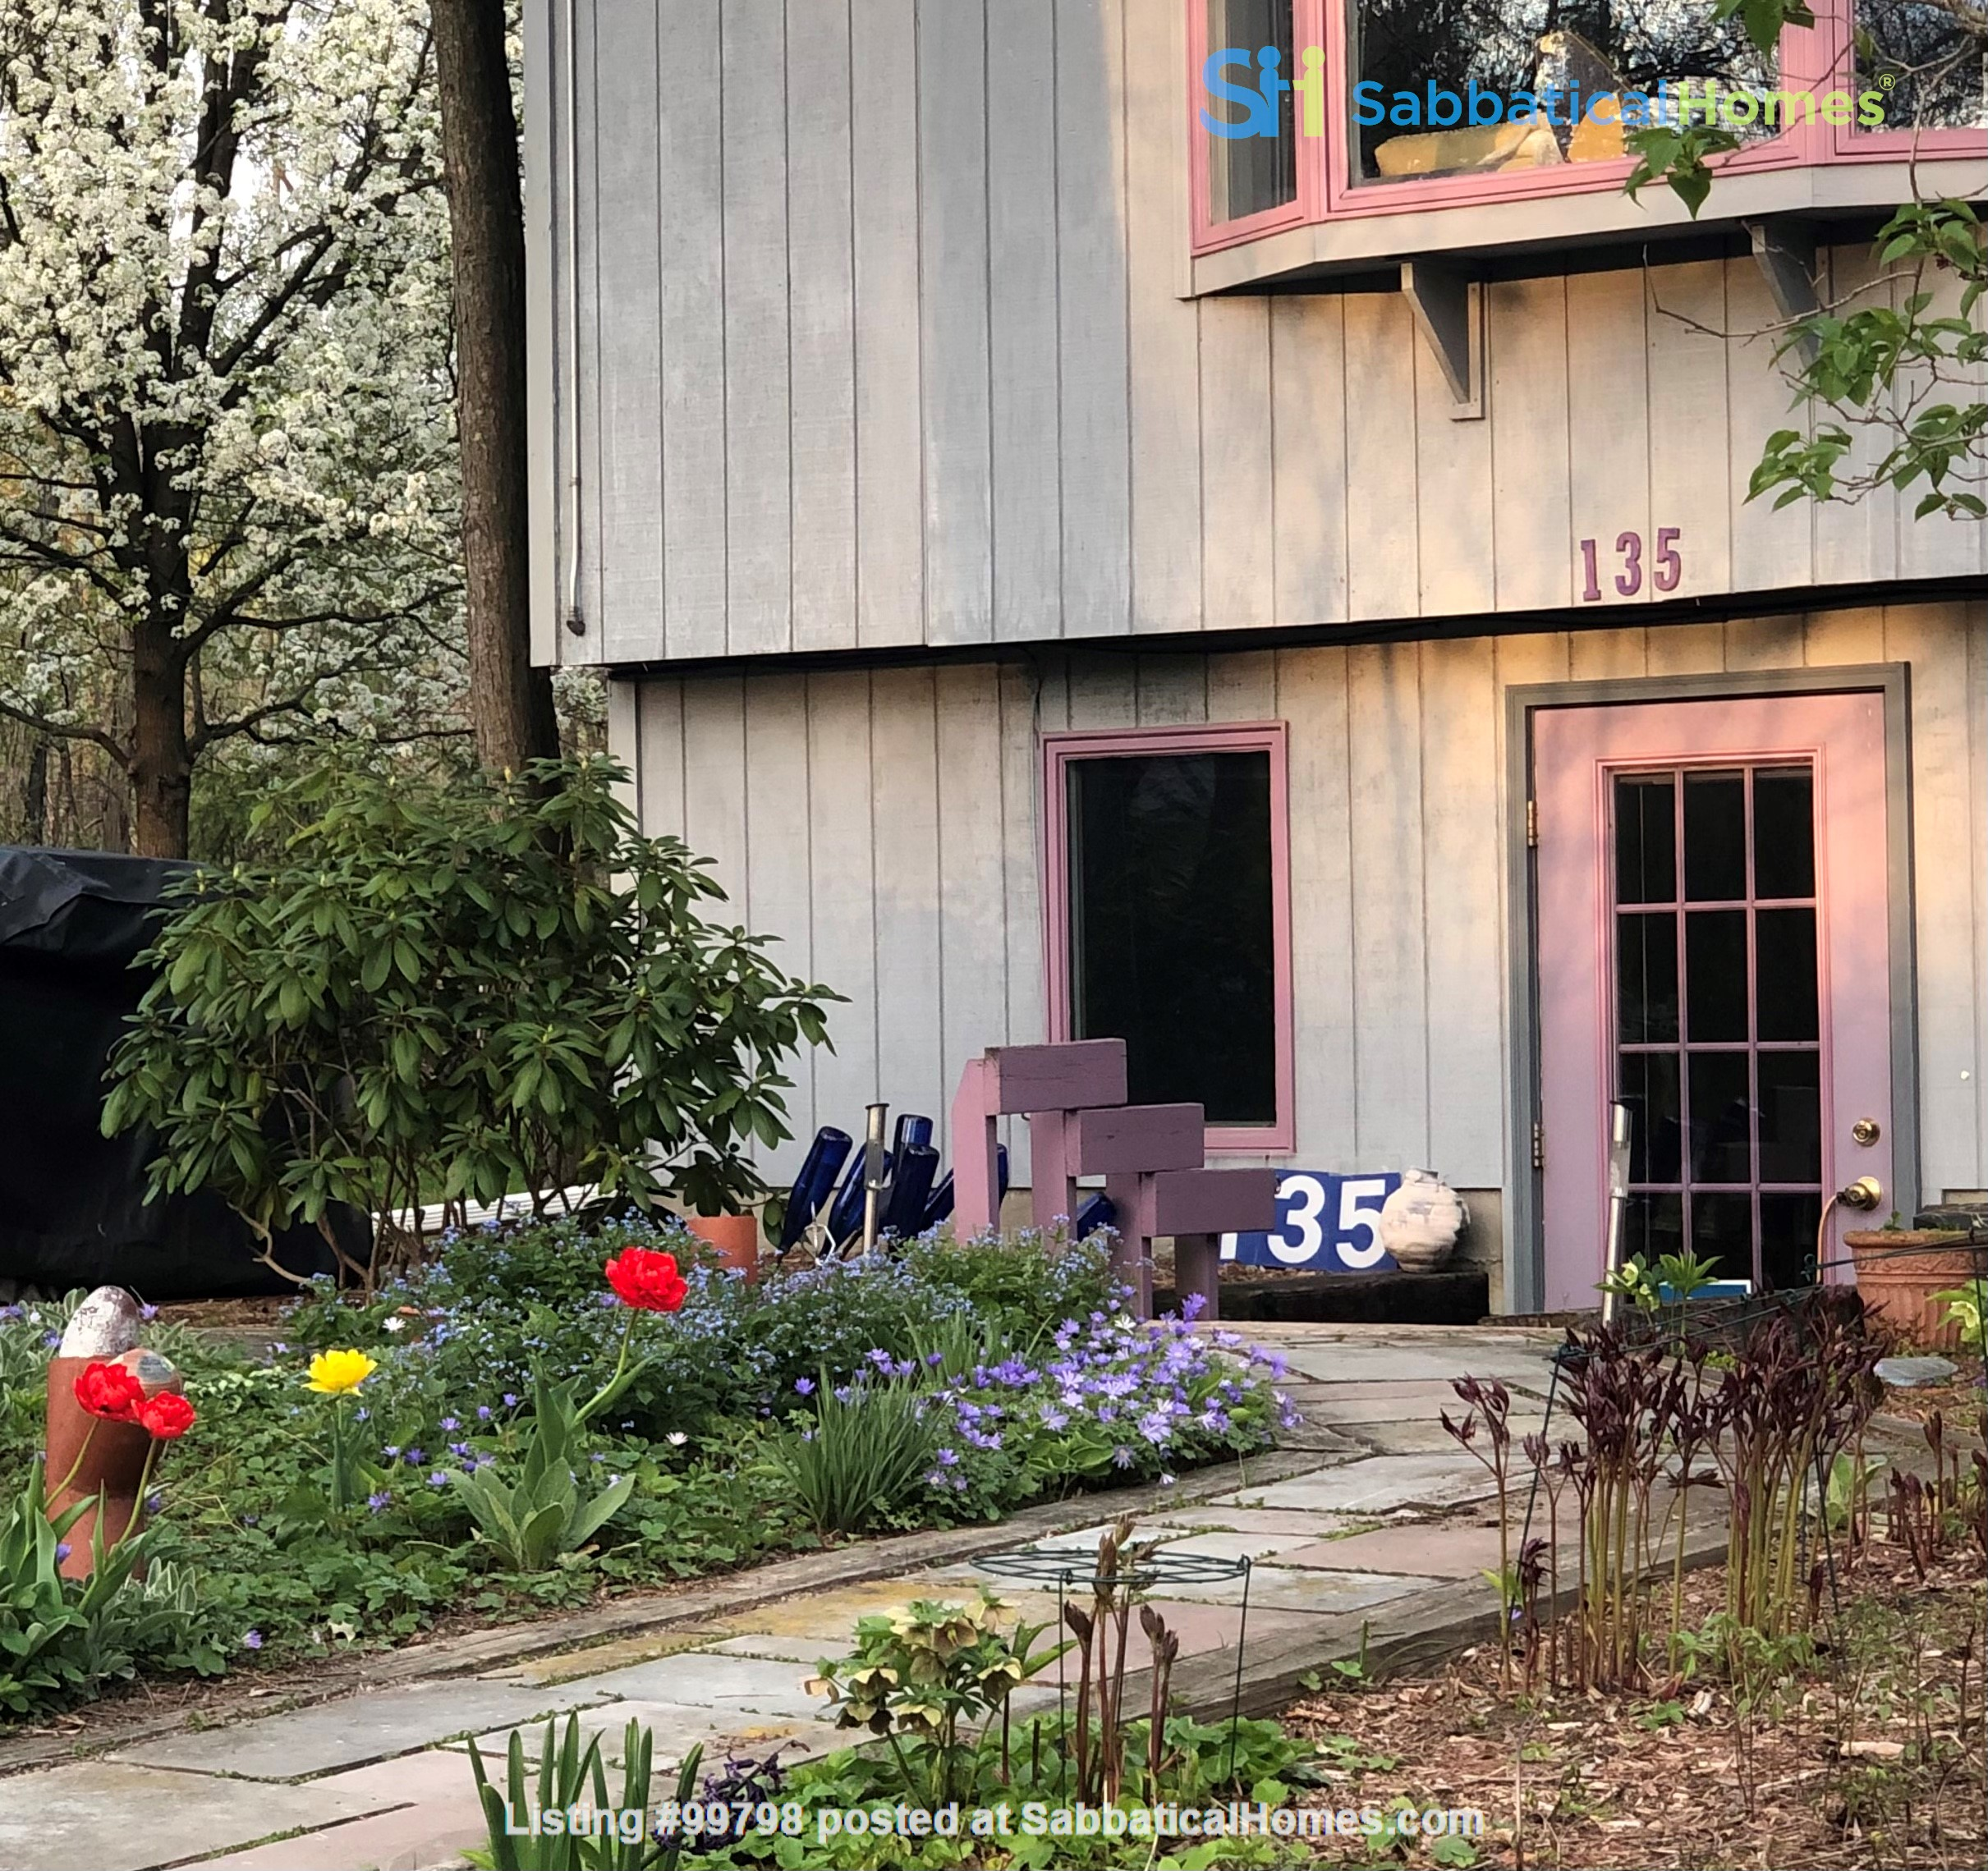 Fully furn. with fireplace, 1 BR apt., all utilities included, wifi, garden, patio, parking, firepit, near CU & shopping, on bus line, NO PETS, NO SMOKING Home Rental in Ithaca 9